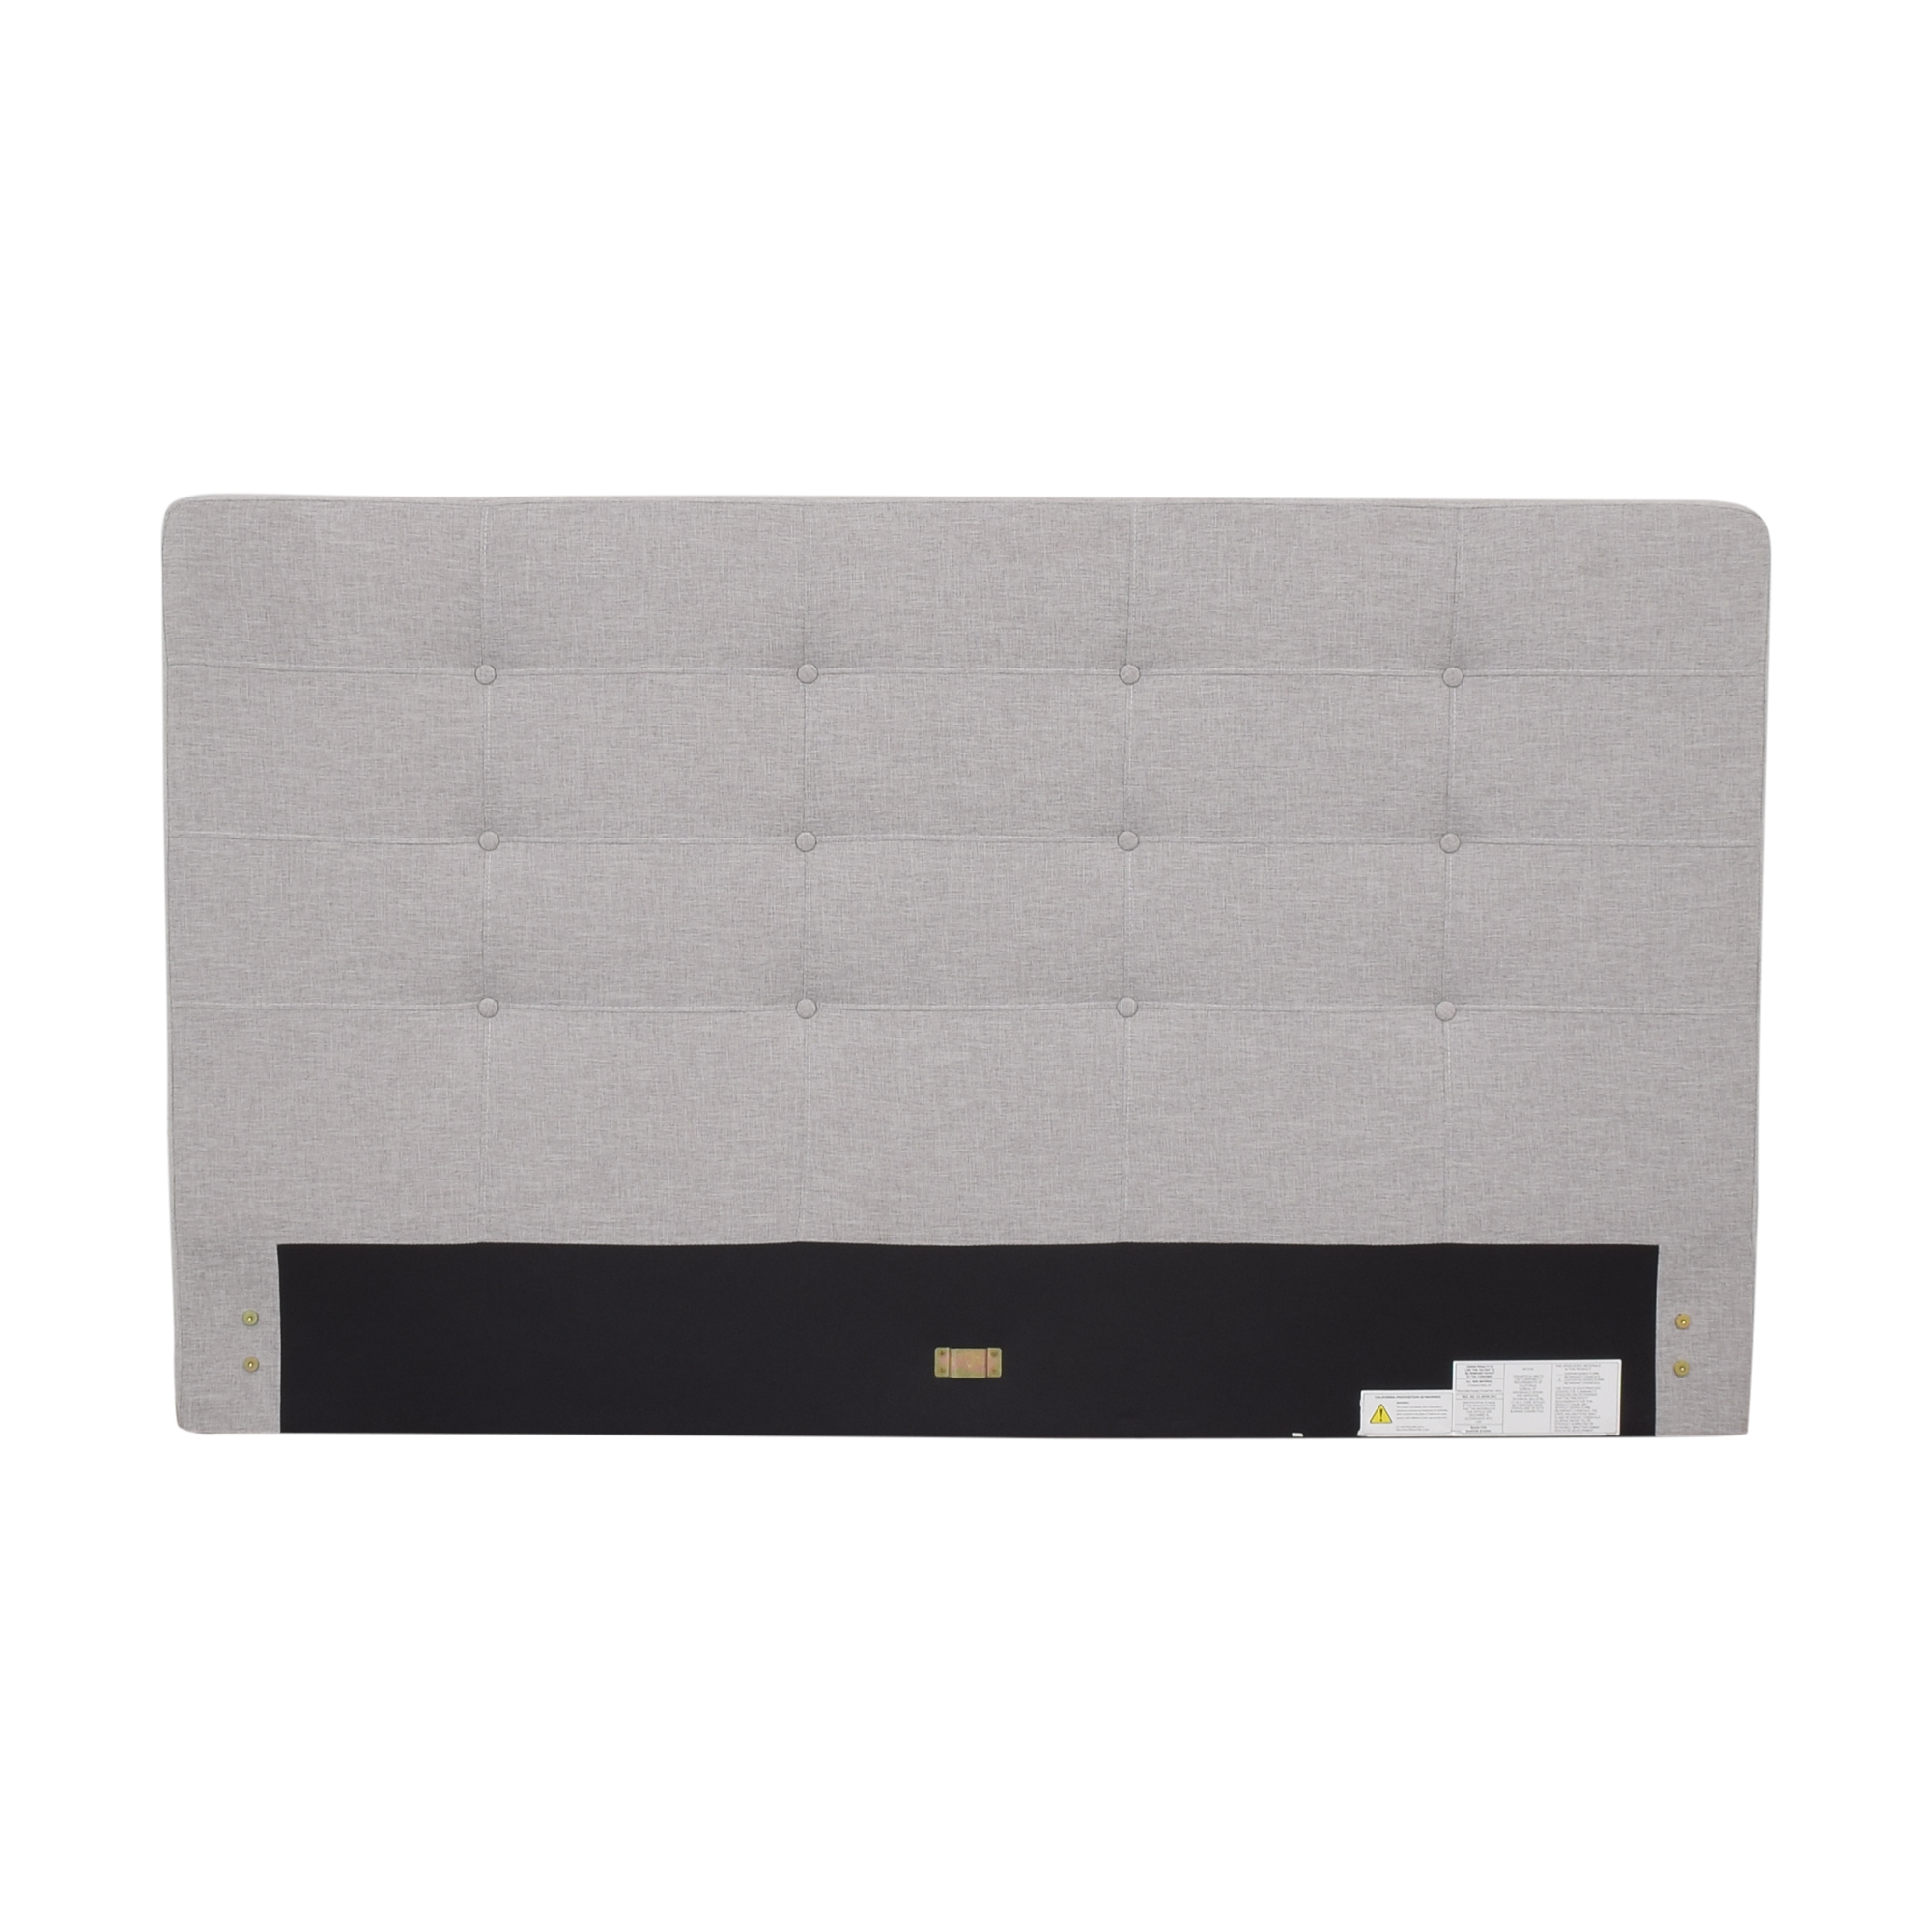 Baxton Studio Baxton Studio Upholstered Queen Headboard coupon